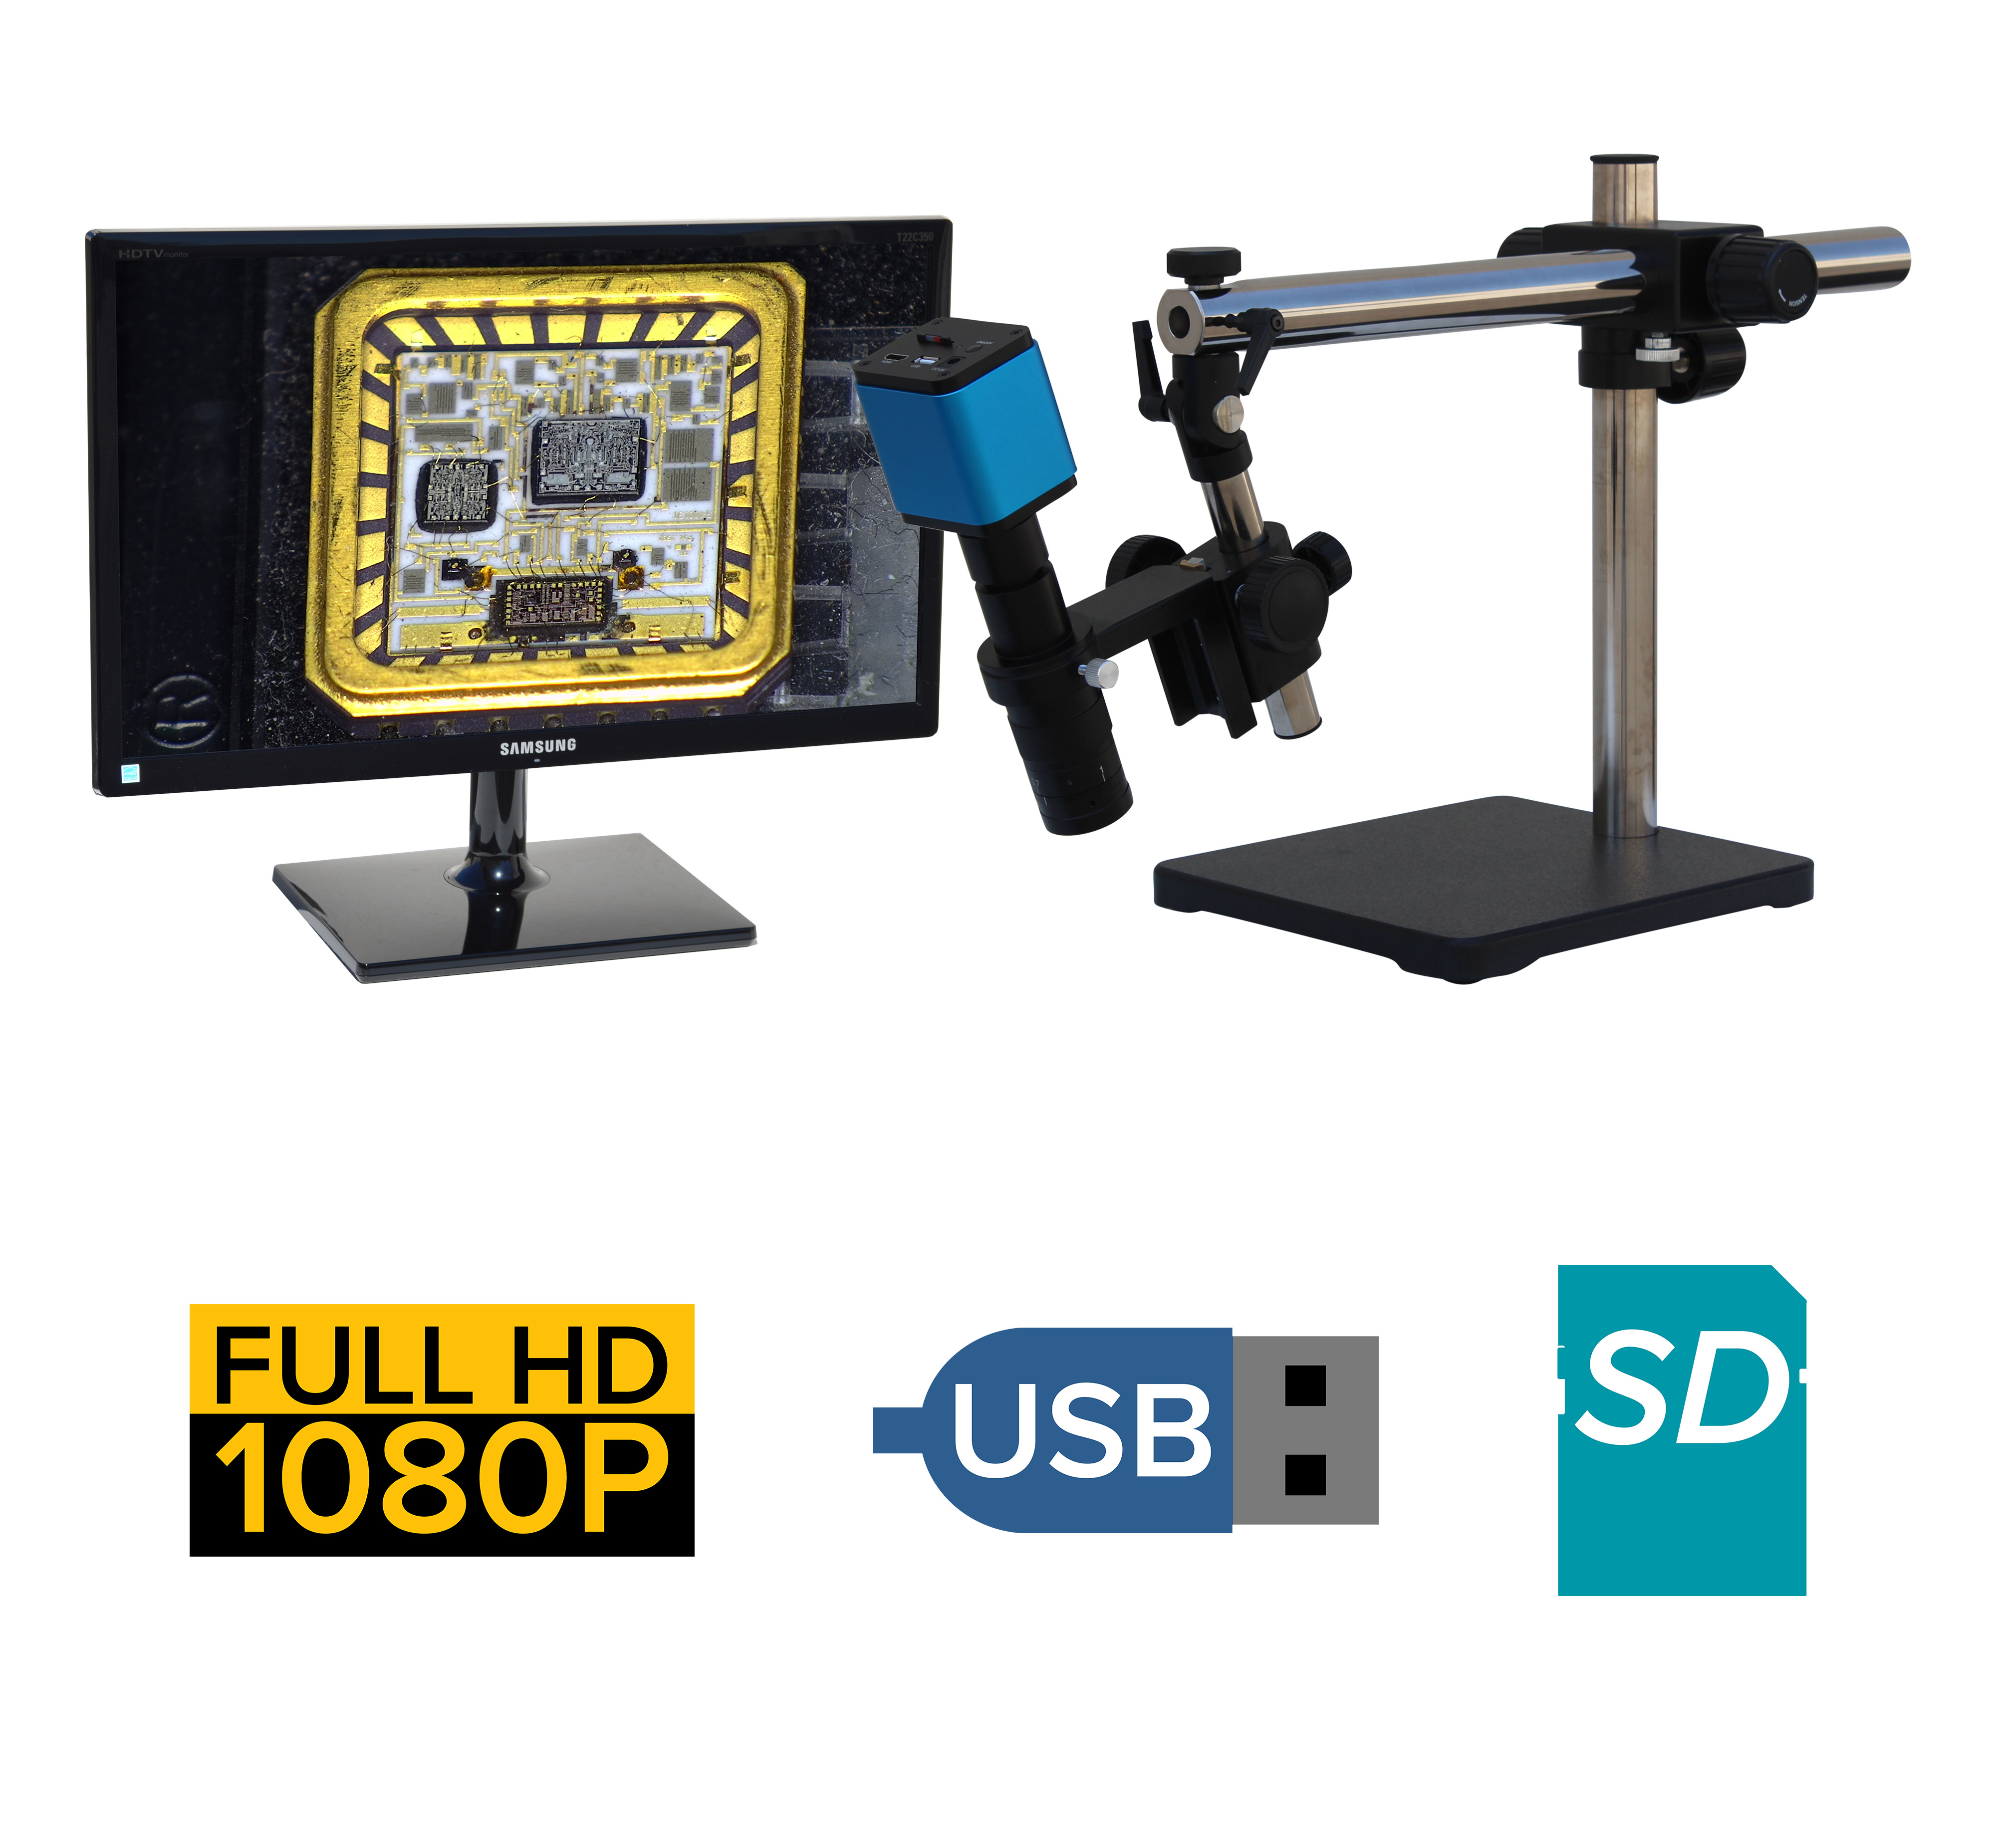 eHD305  series 36x-229x or possible 18x-457x + HD1080p + SD Card + USB + Measurement Option [Starting at $950]